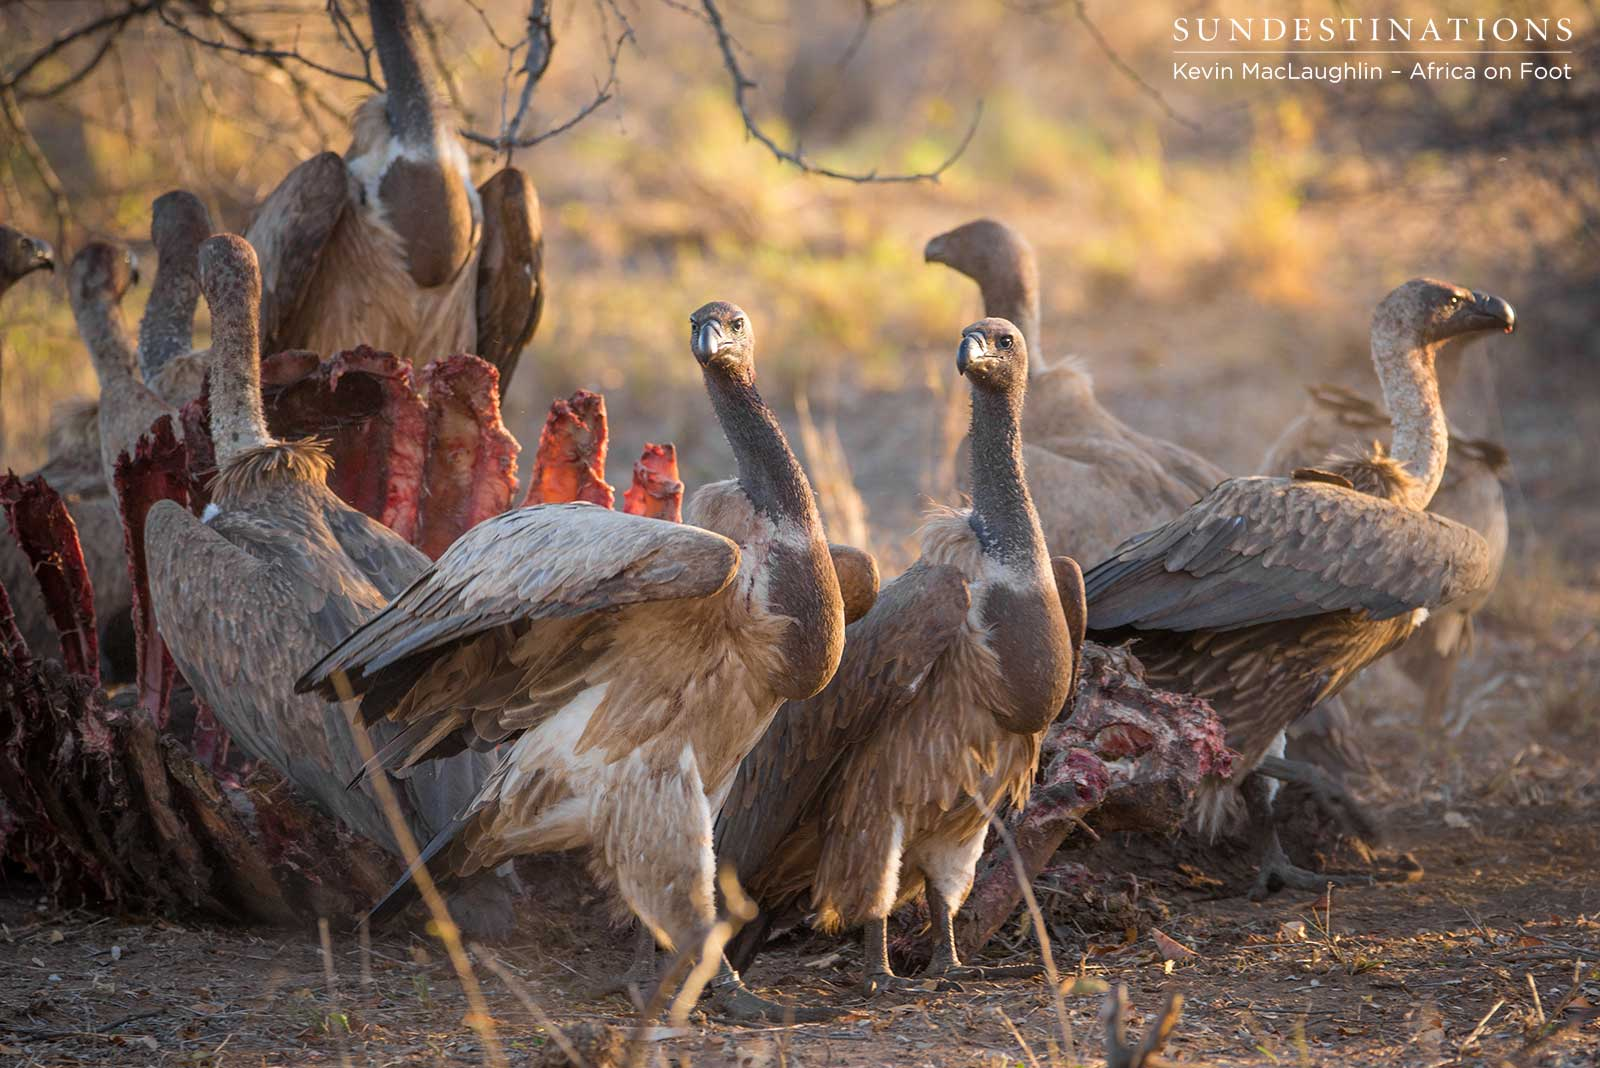 Vultures tucking in to the buffalo carcass